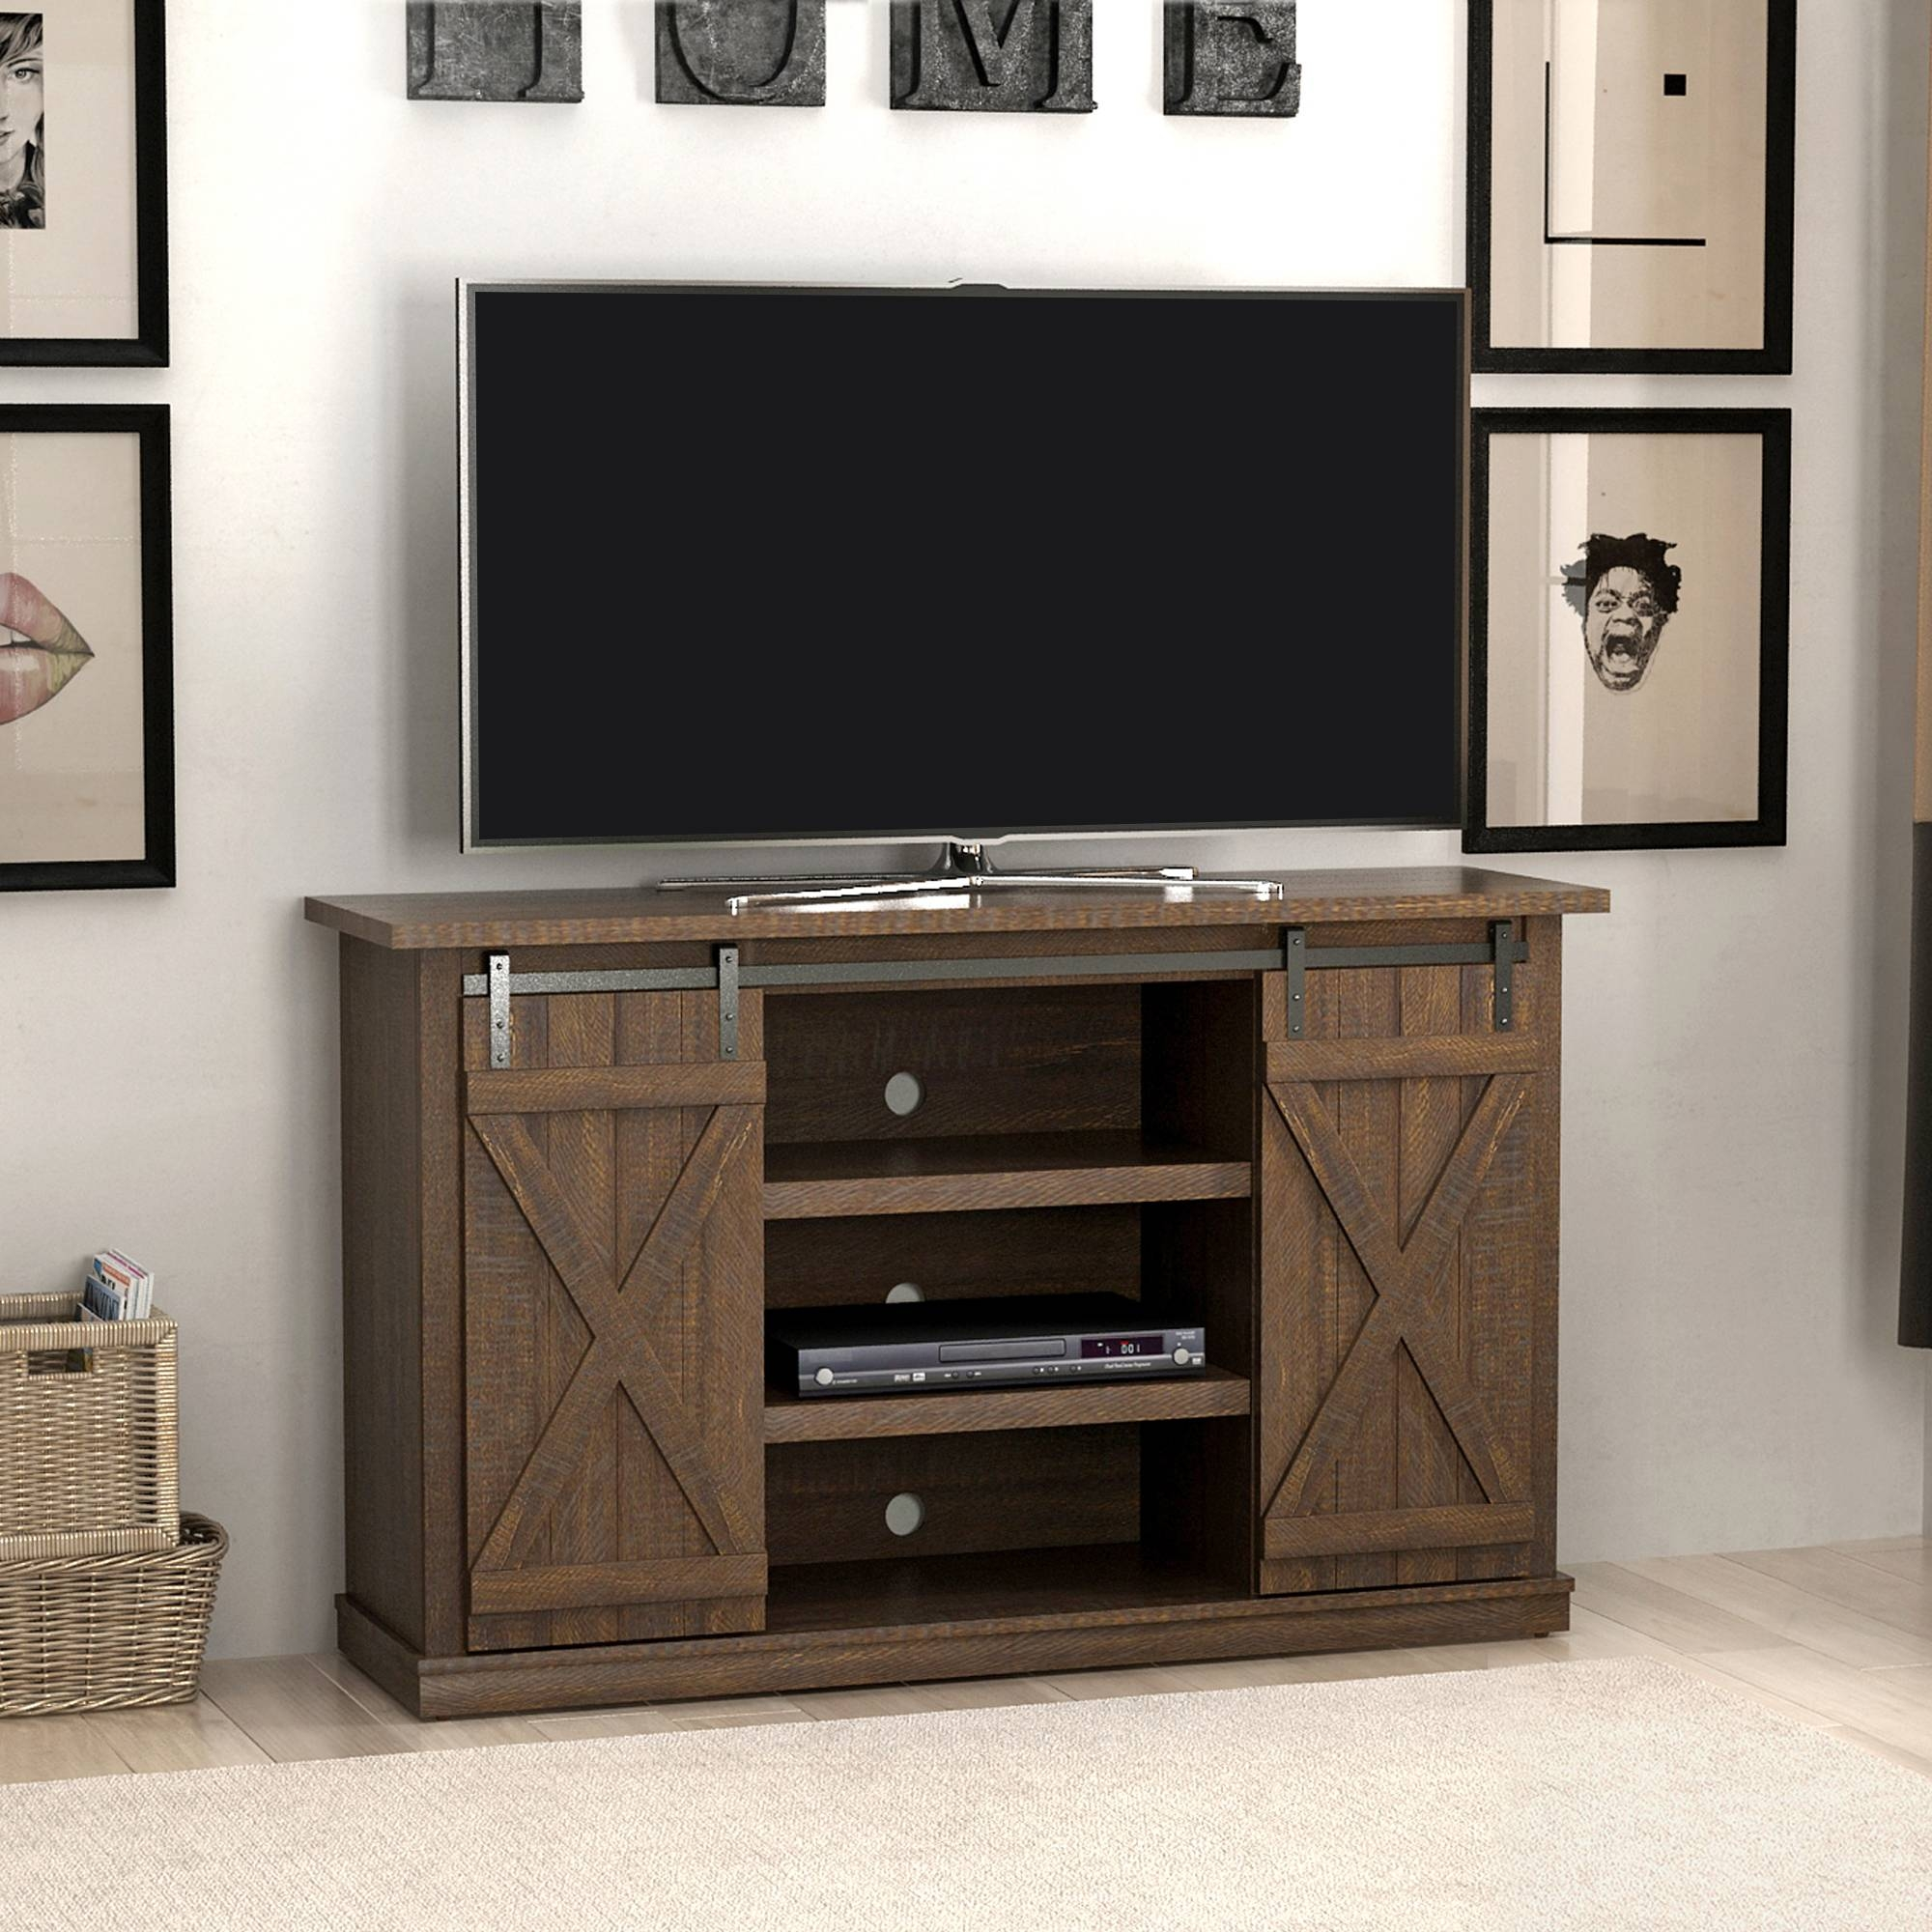 Tv Stands - Walmart intended for 24 Inch Tall Tv Stands (Image 13 of 15)